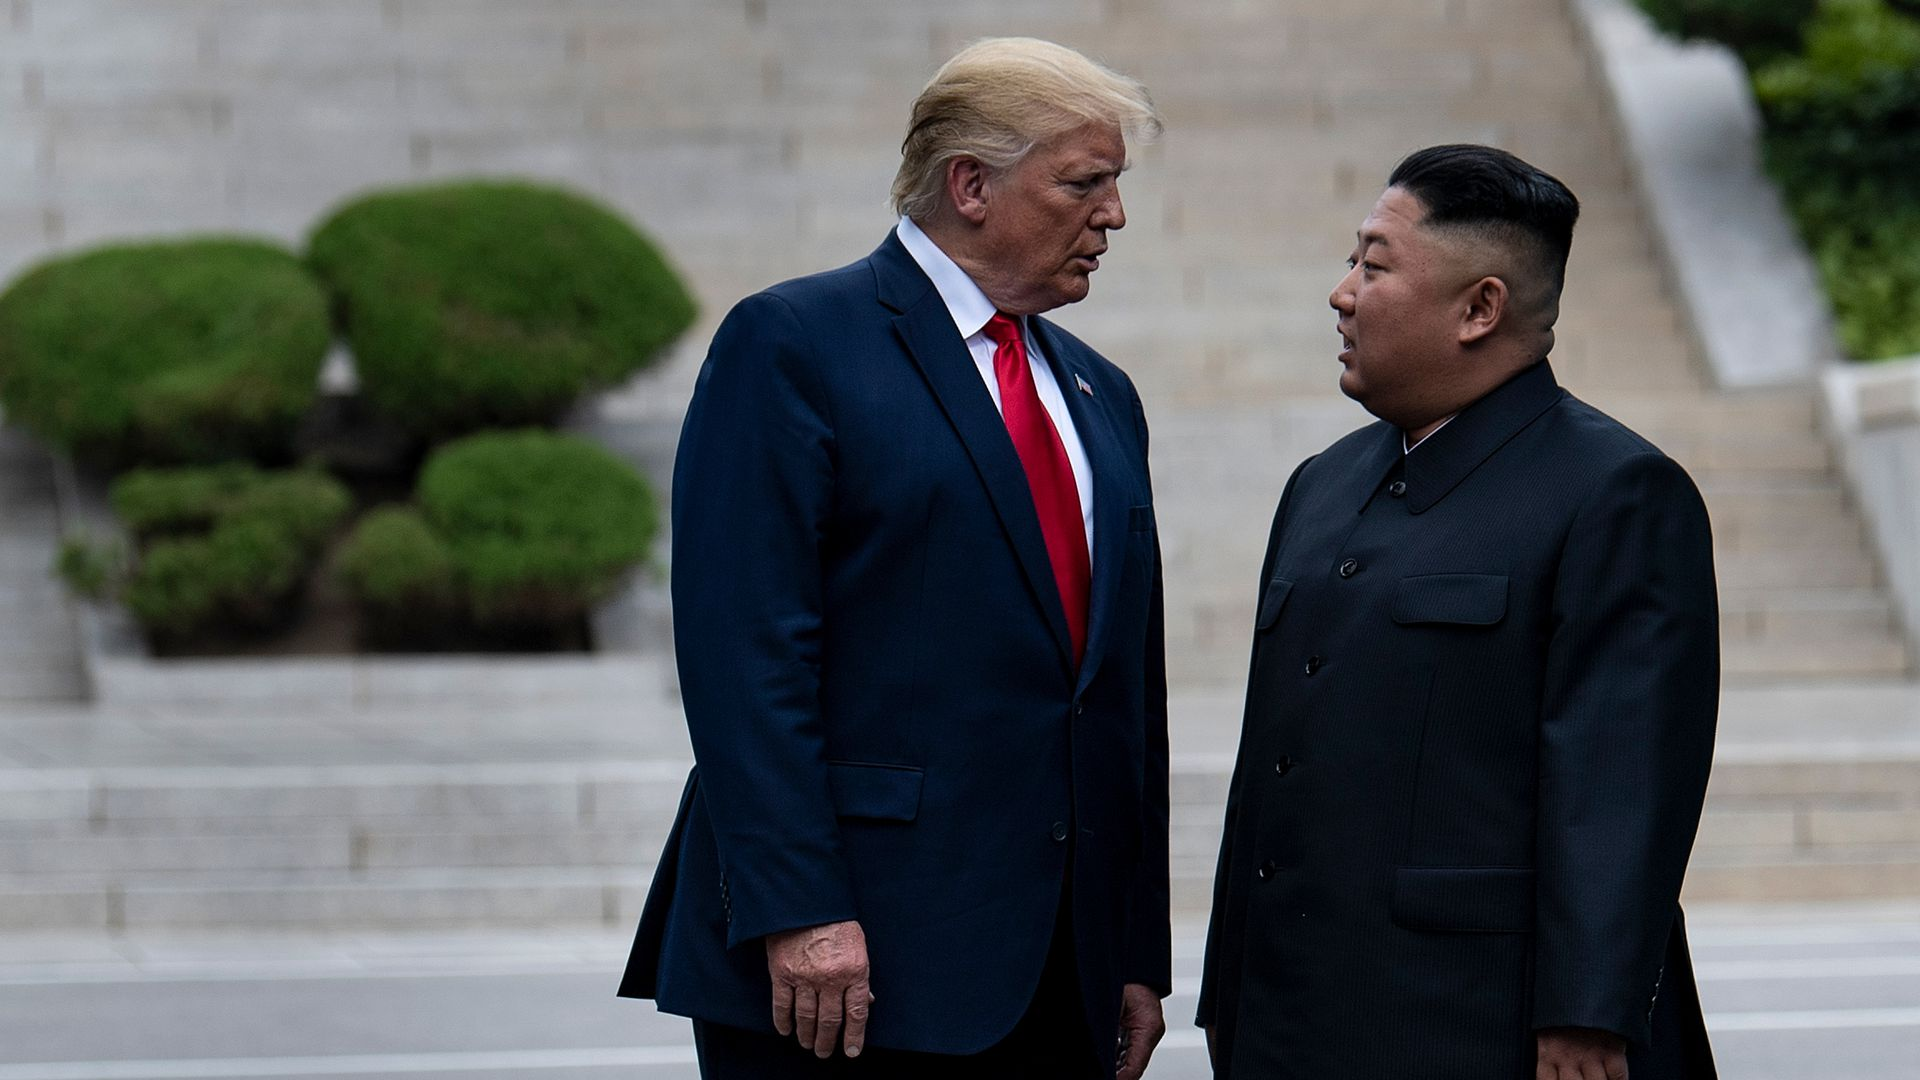 President Donald Trump and North Korea's leader Kim Jong-un stand on North Korean soil.